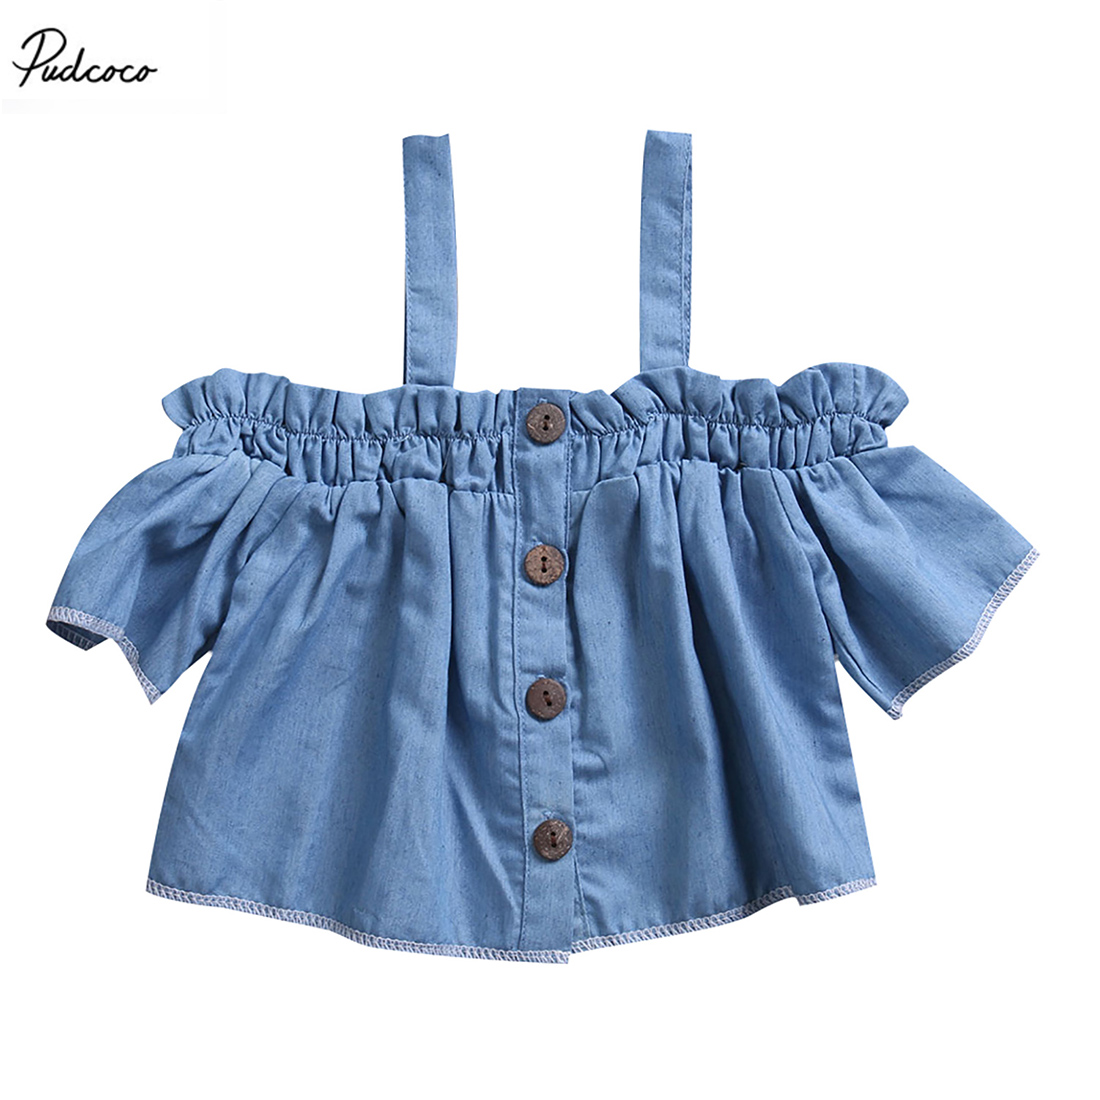 b3c99fa78aa Pudcoco Cute Infant Kid Baby Girls Blue Crop Tops Casual Cold ...